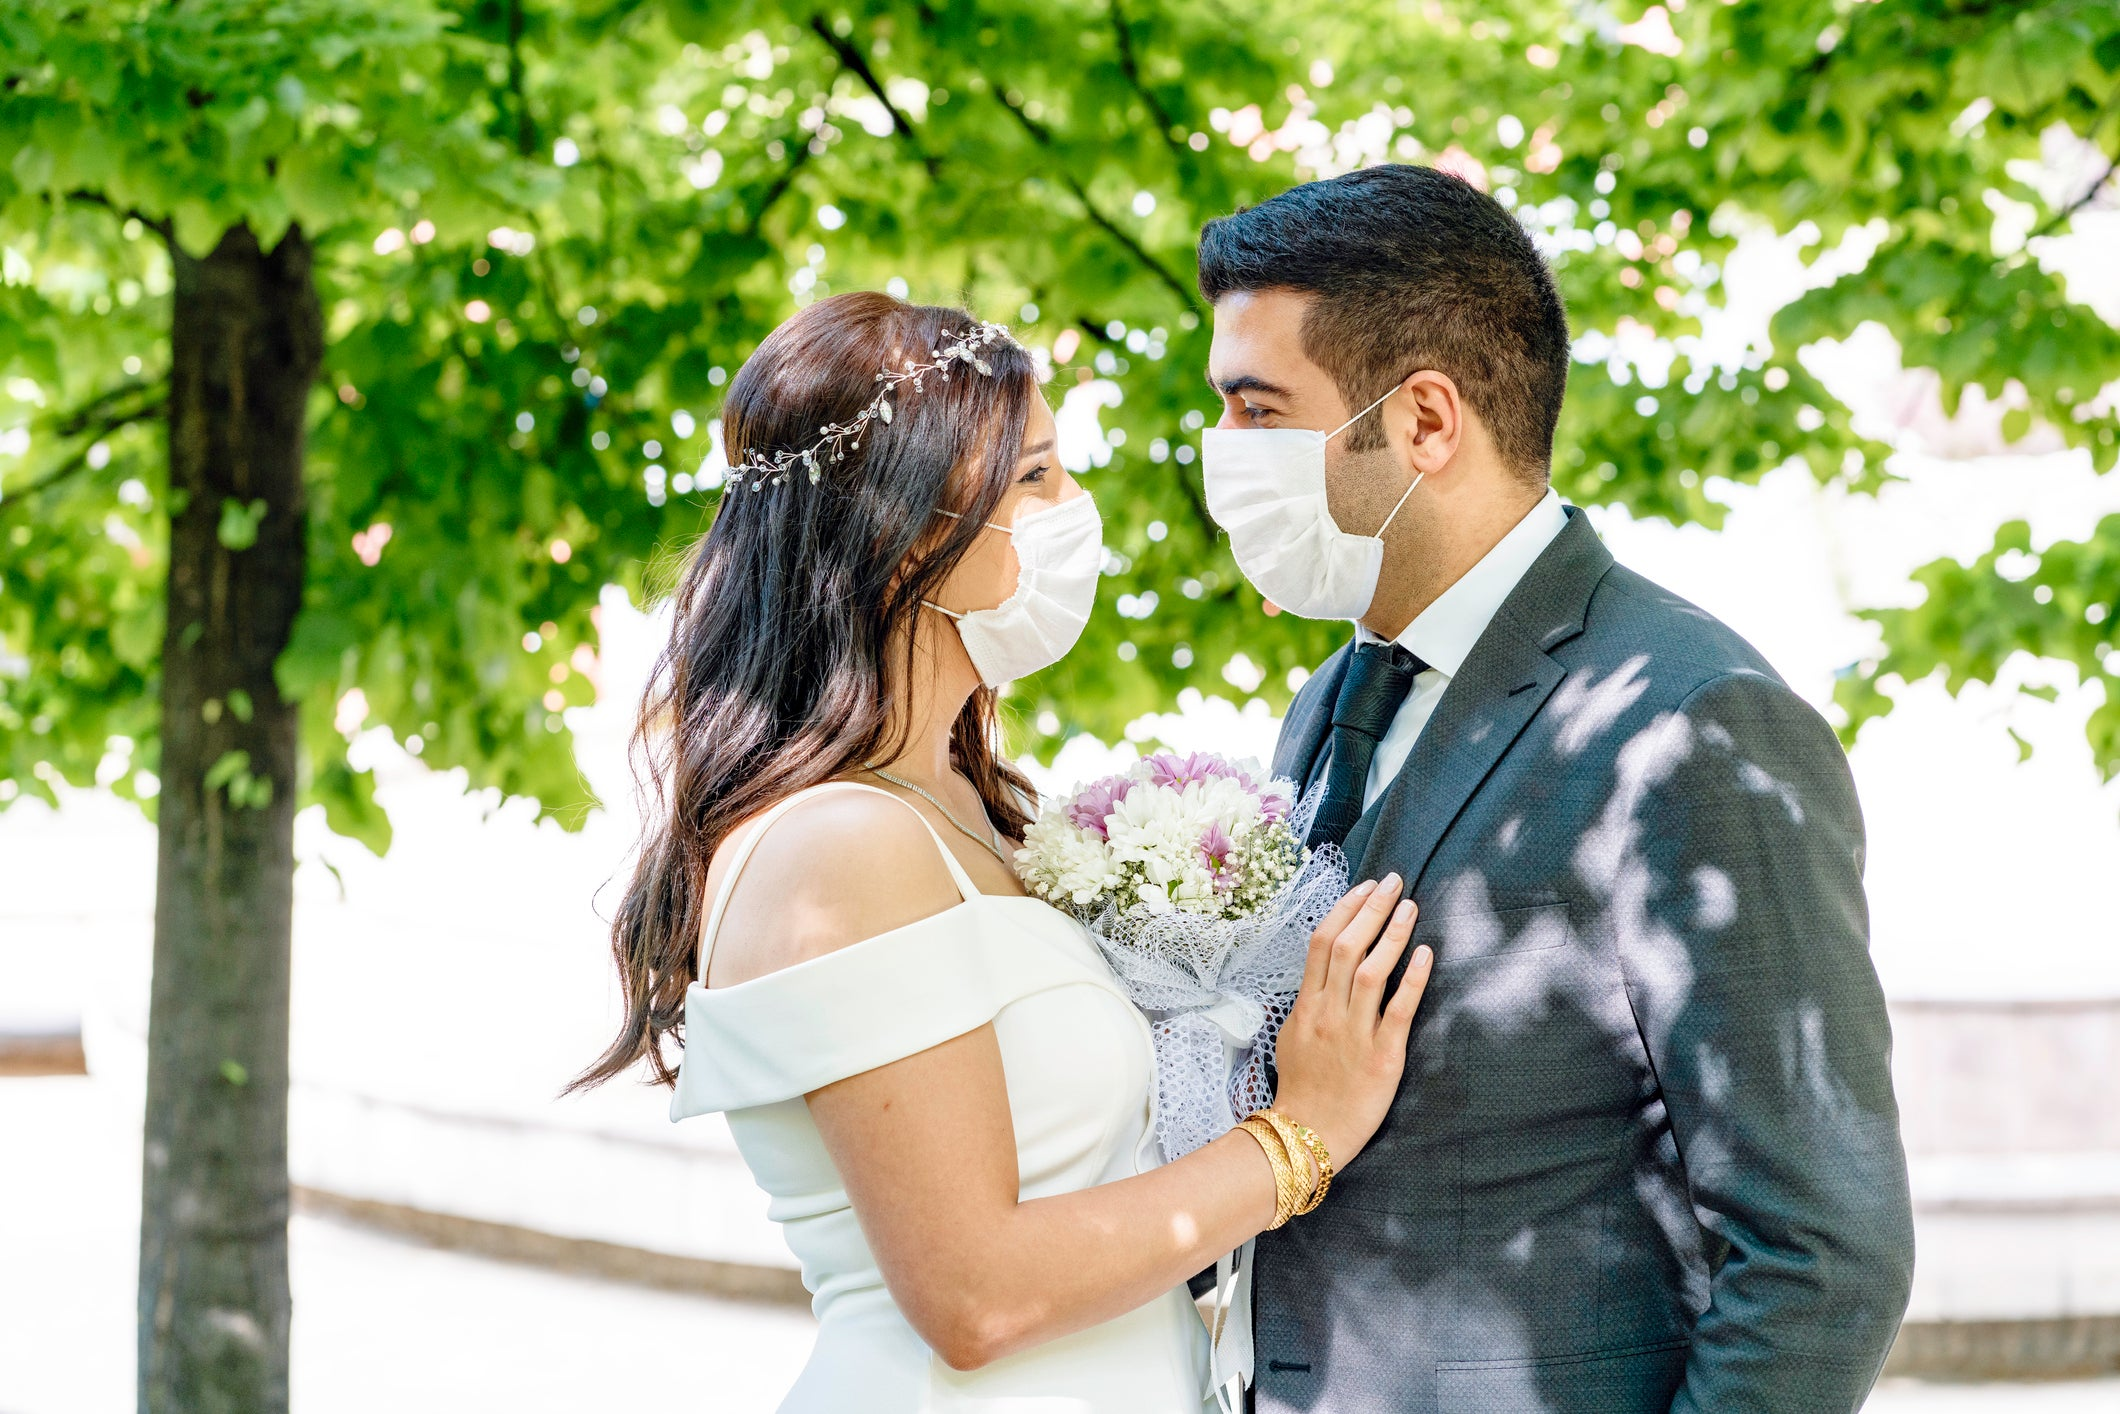 Getting Married Safely During the Pandemic